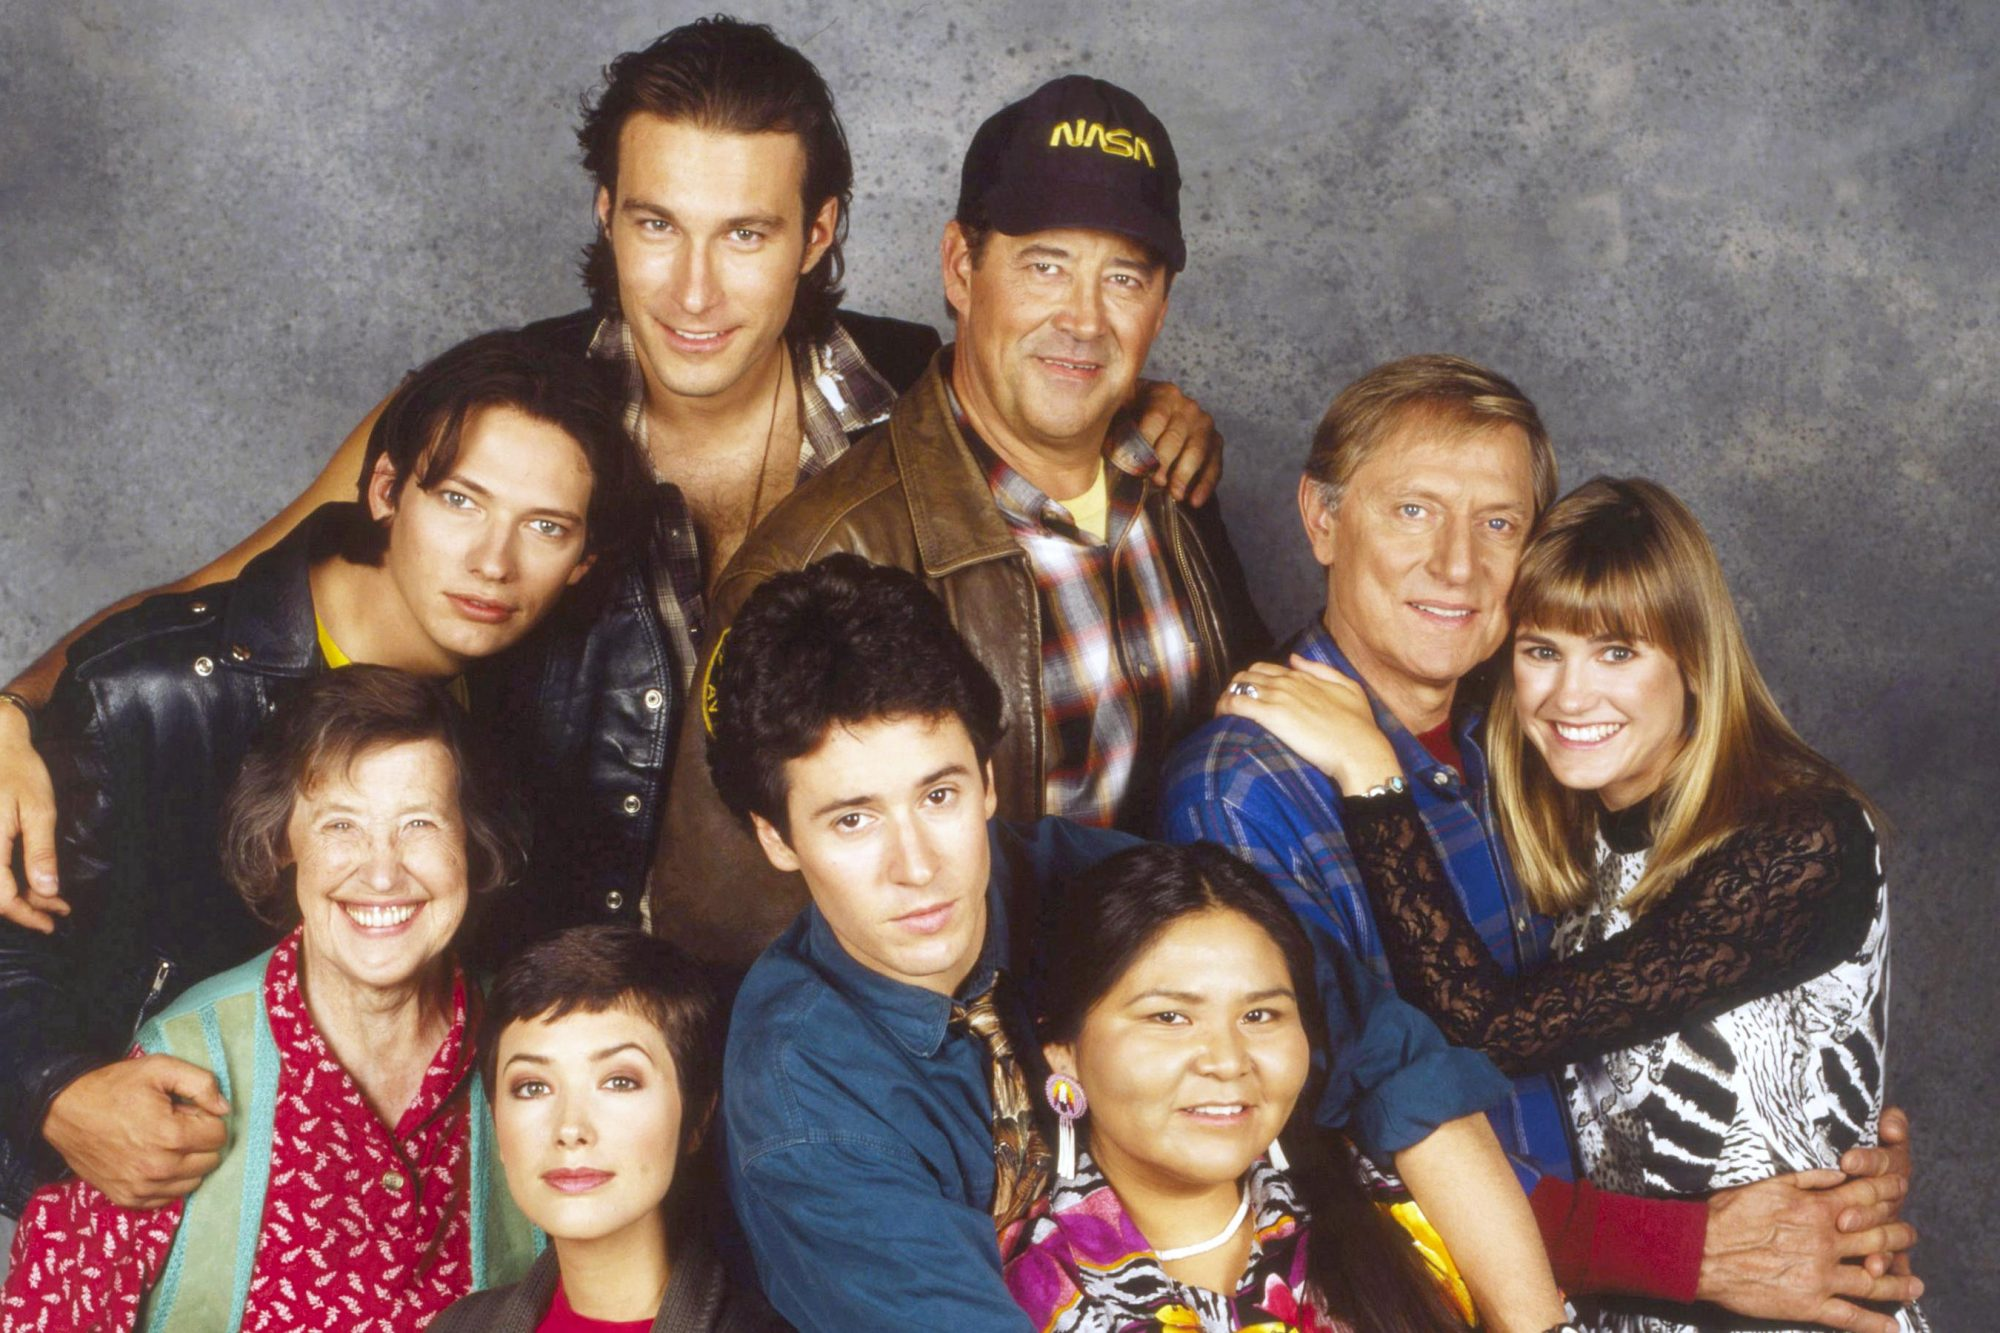 NORTHERN EXPOSURE, front from left: Peg Phillips, Janine Turner, Rob Morrow, Elaine Miles, rear